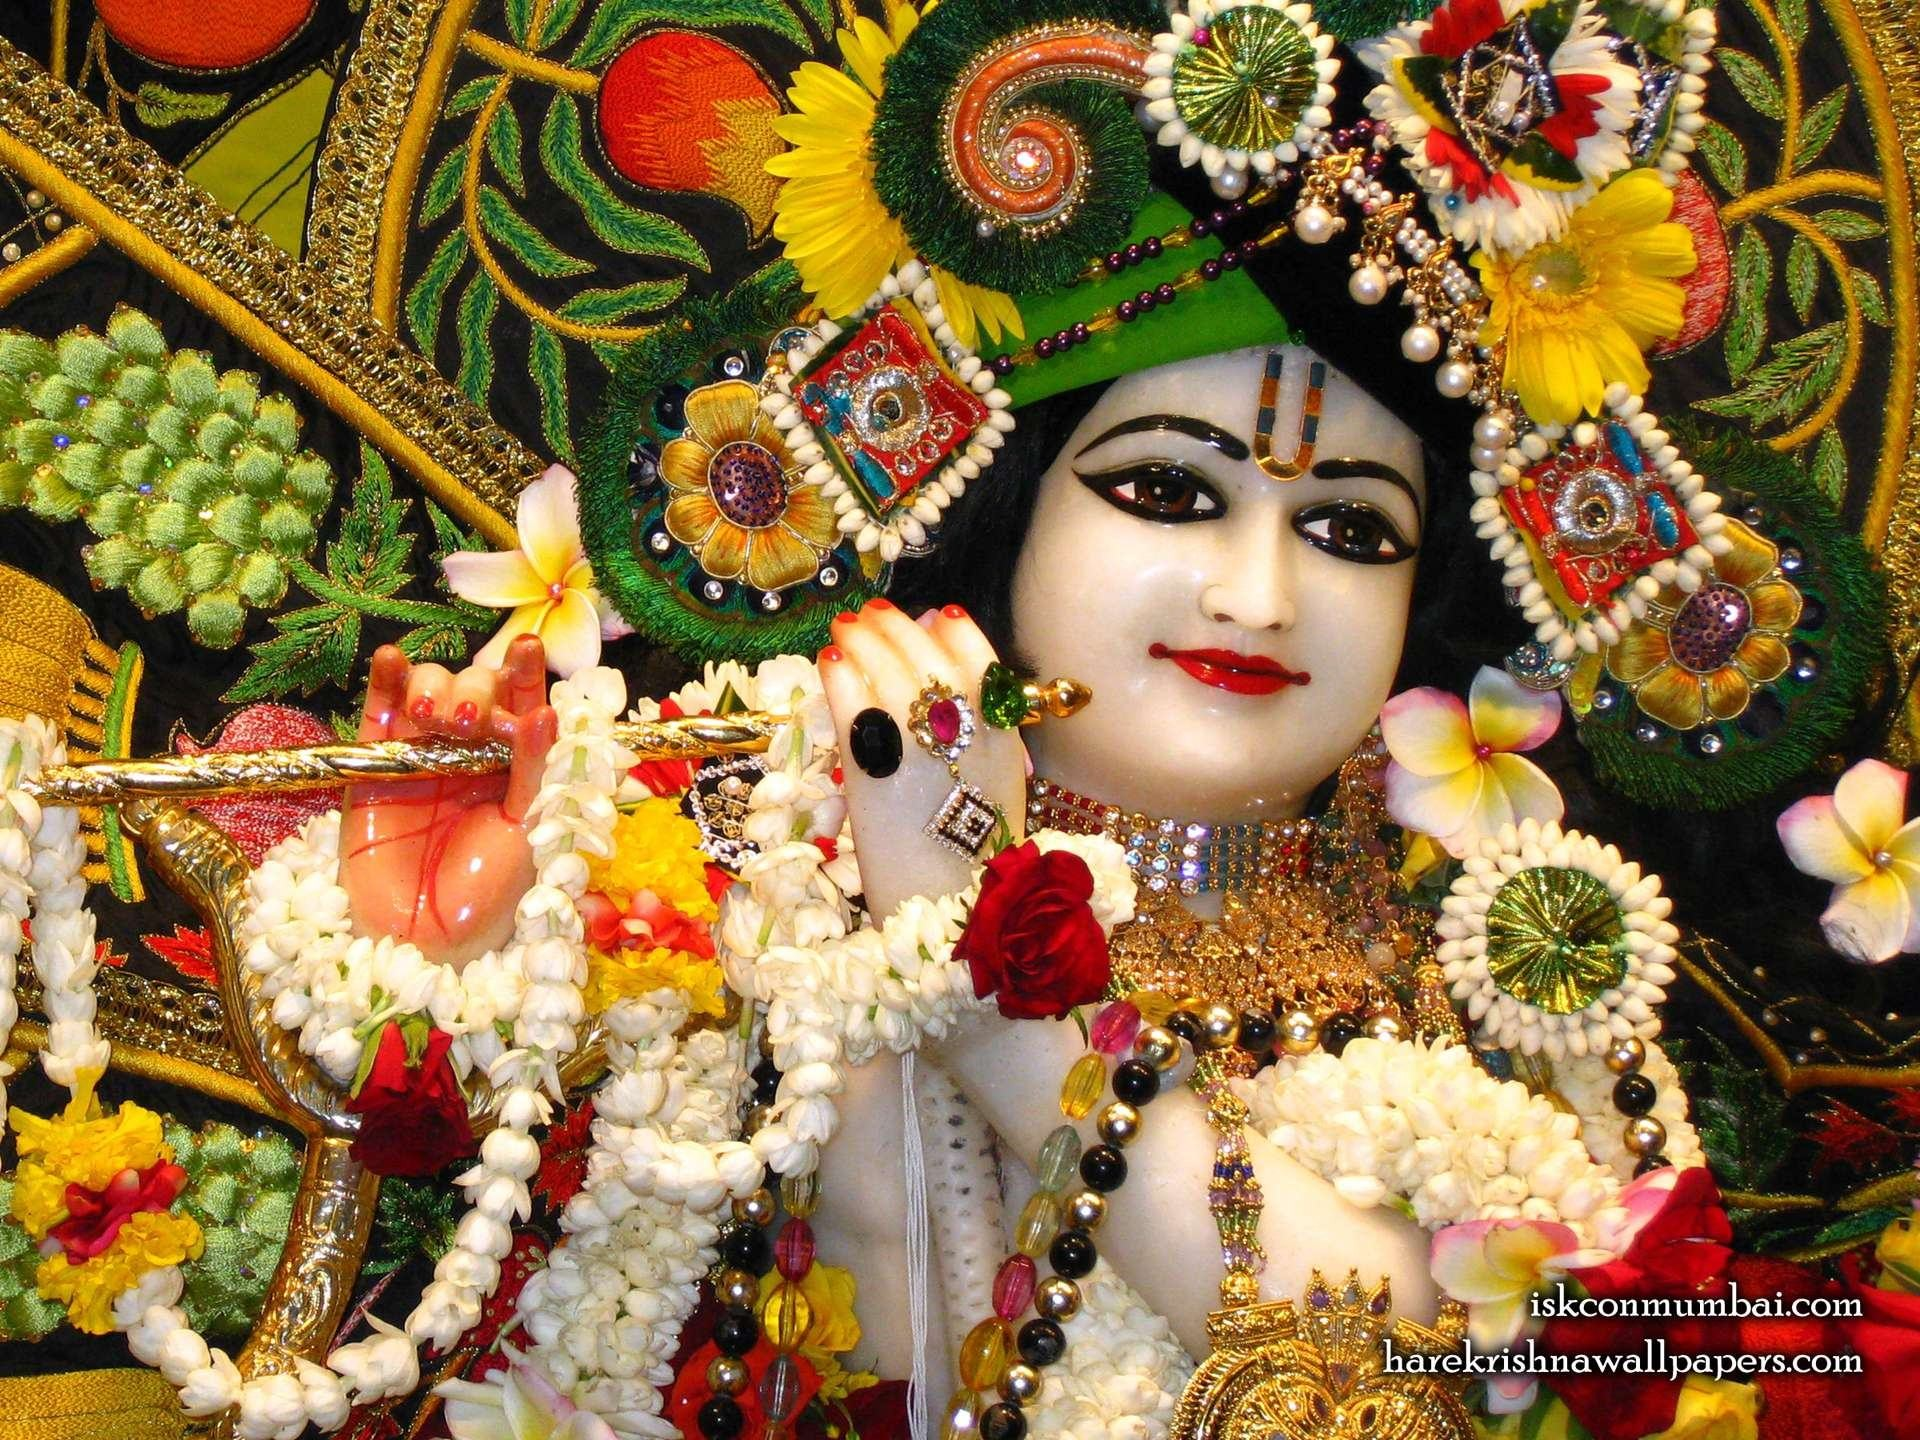 729089 new krishna wallpapers 1920x1440 pictures